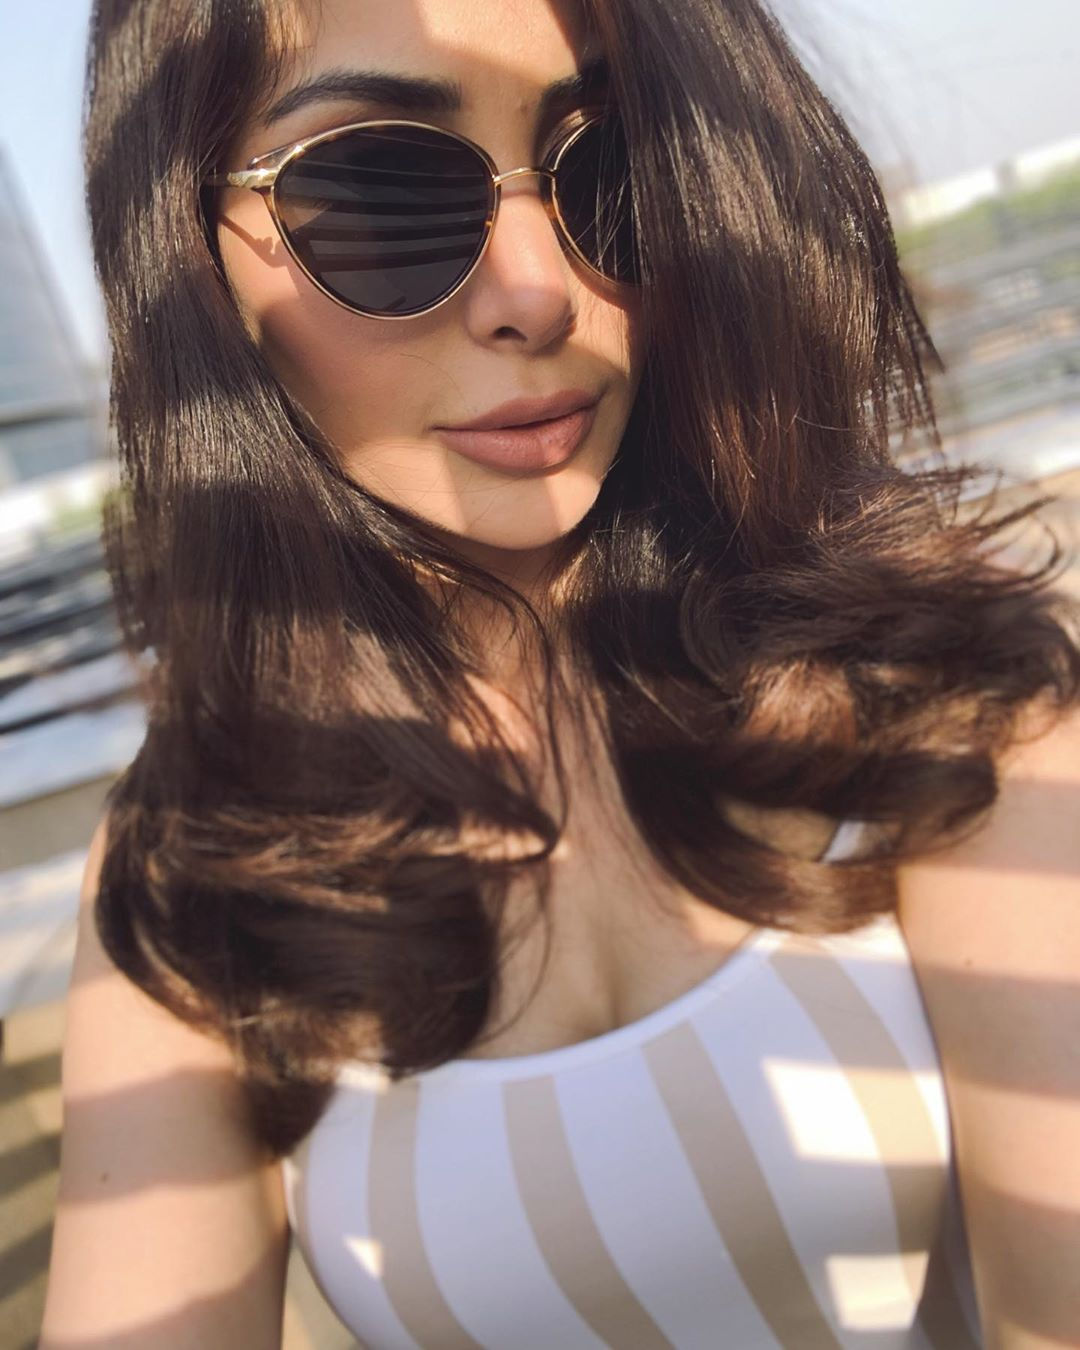 Sabeeka Imam is Looking Gorgeous in Her Instagram Pictures